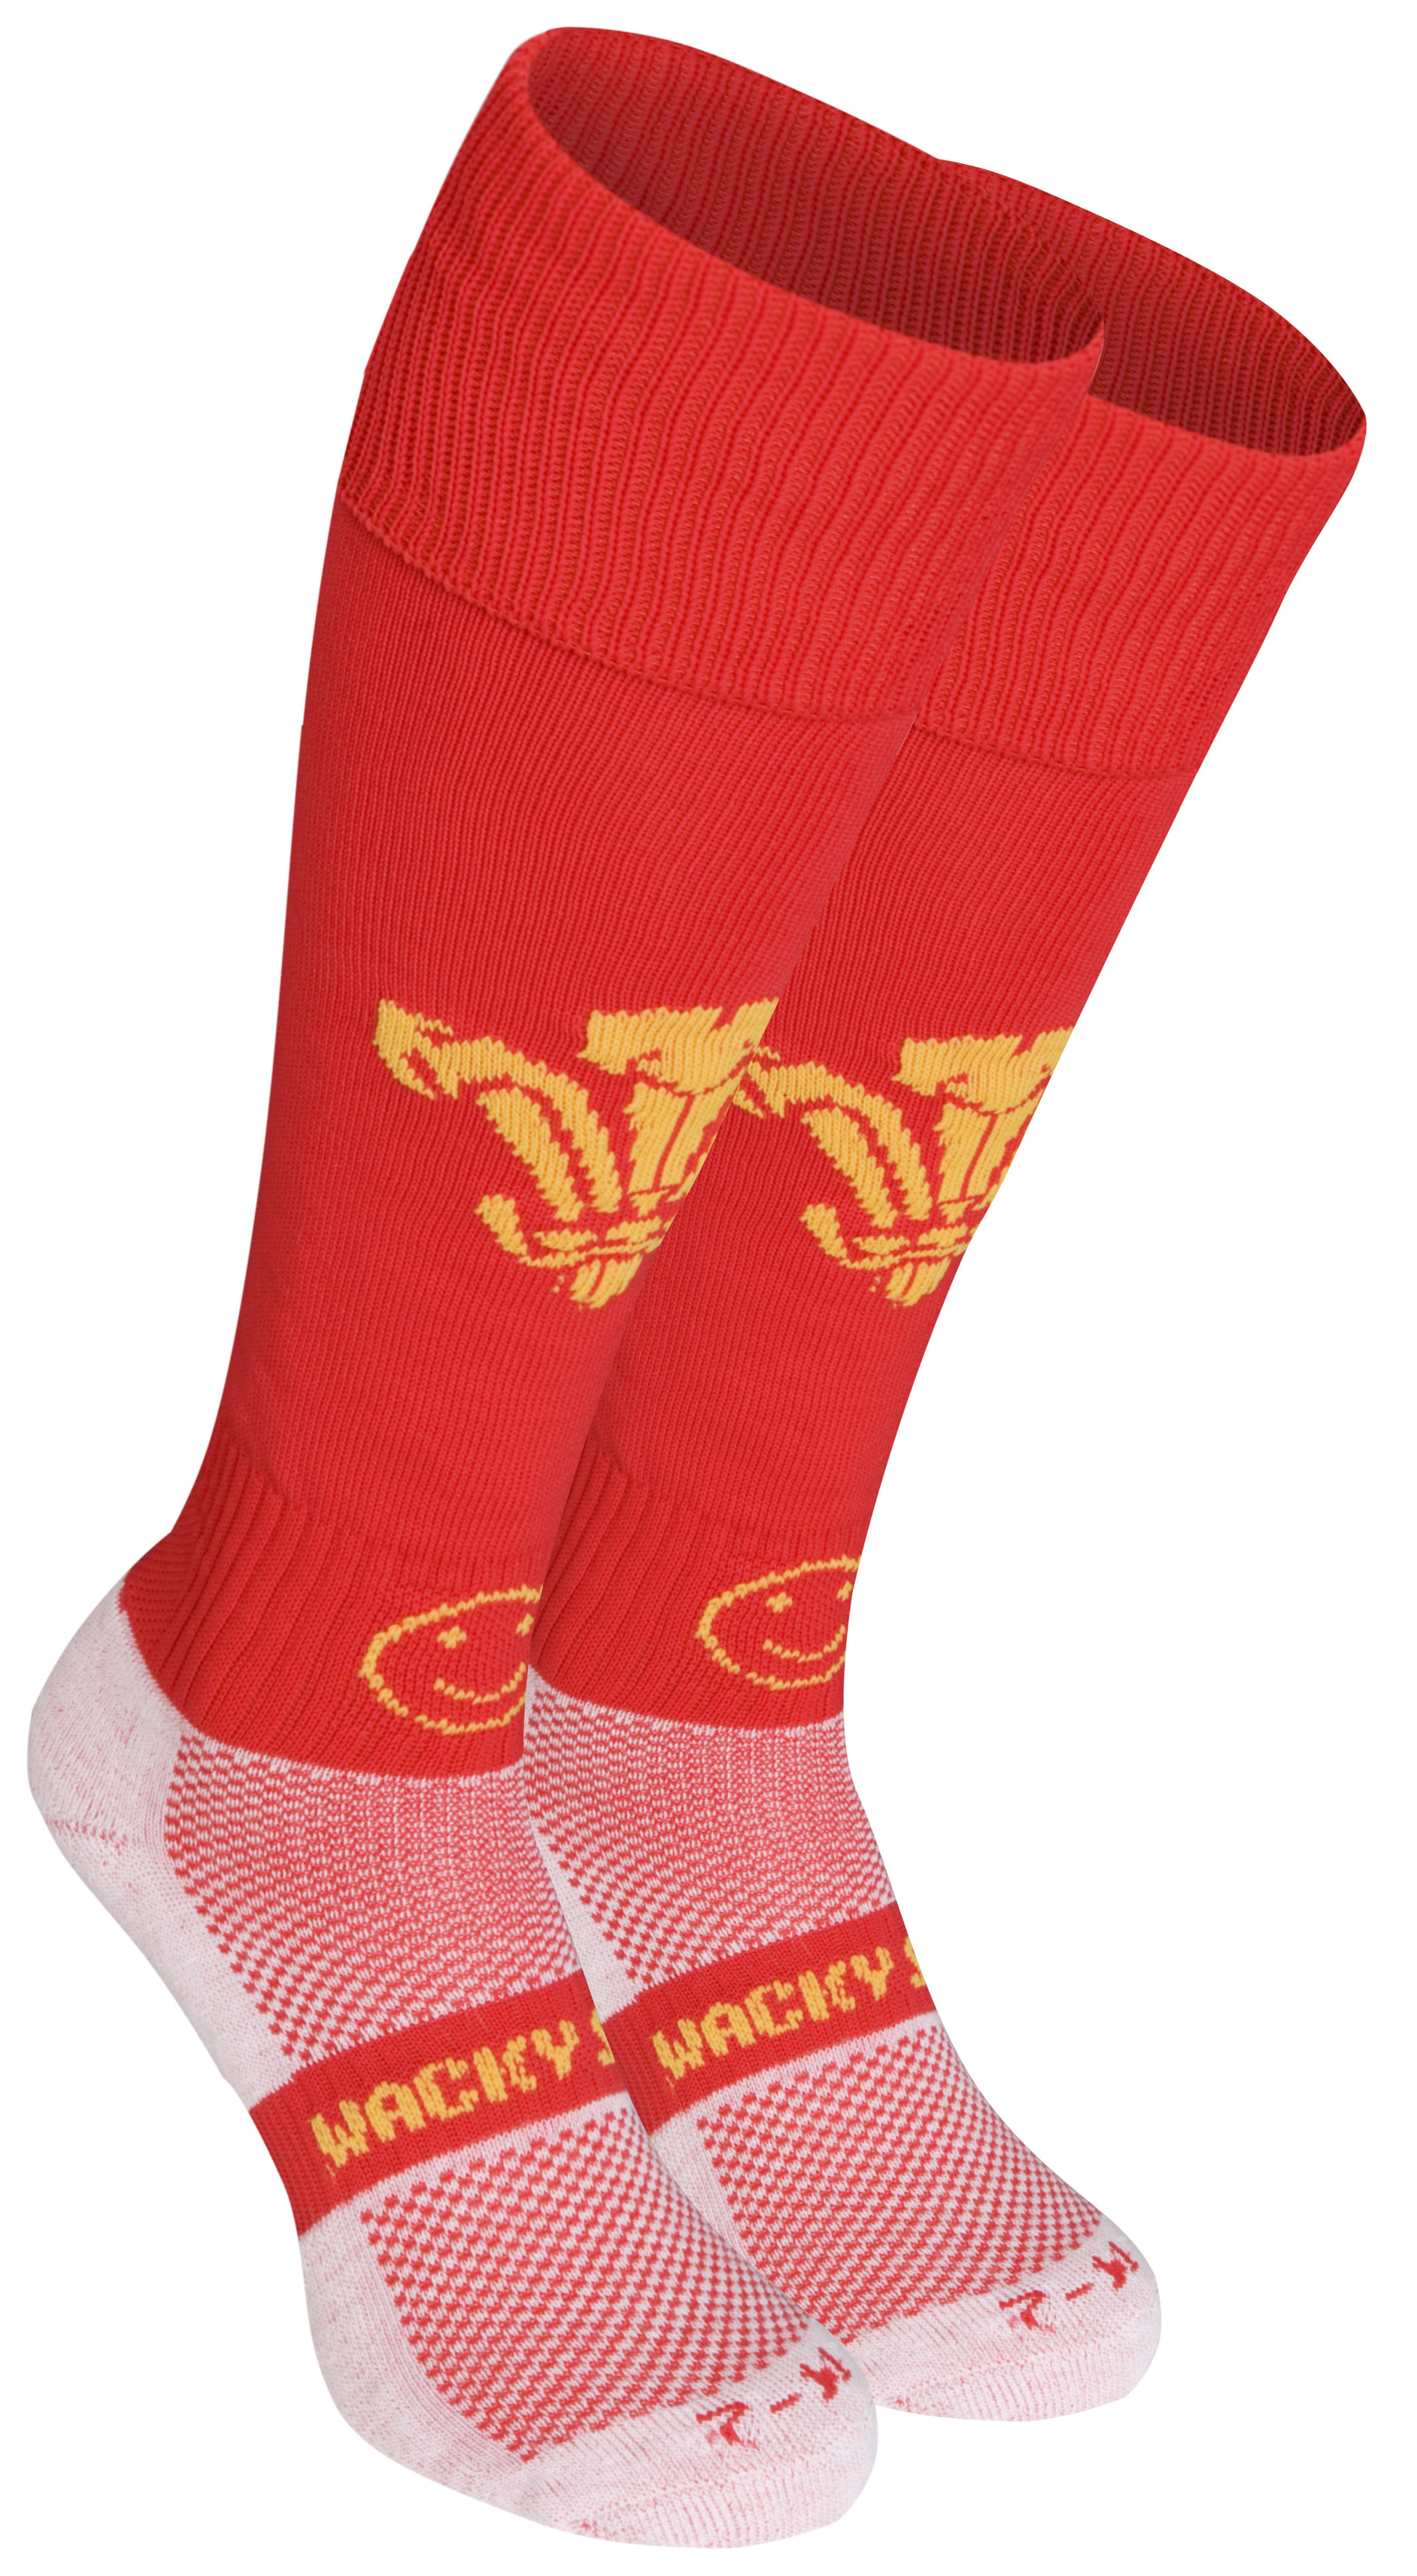 WackySox Wales Socks - Red - Size 7-11